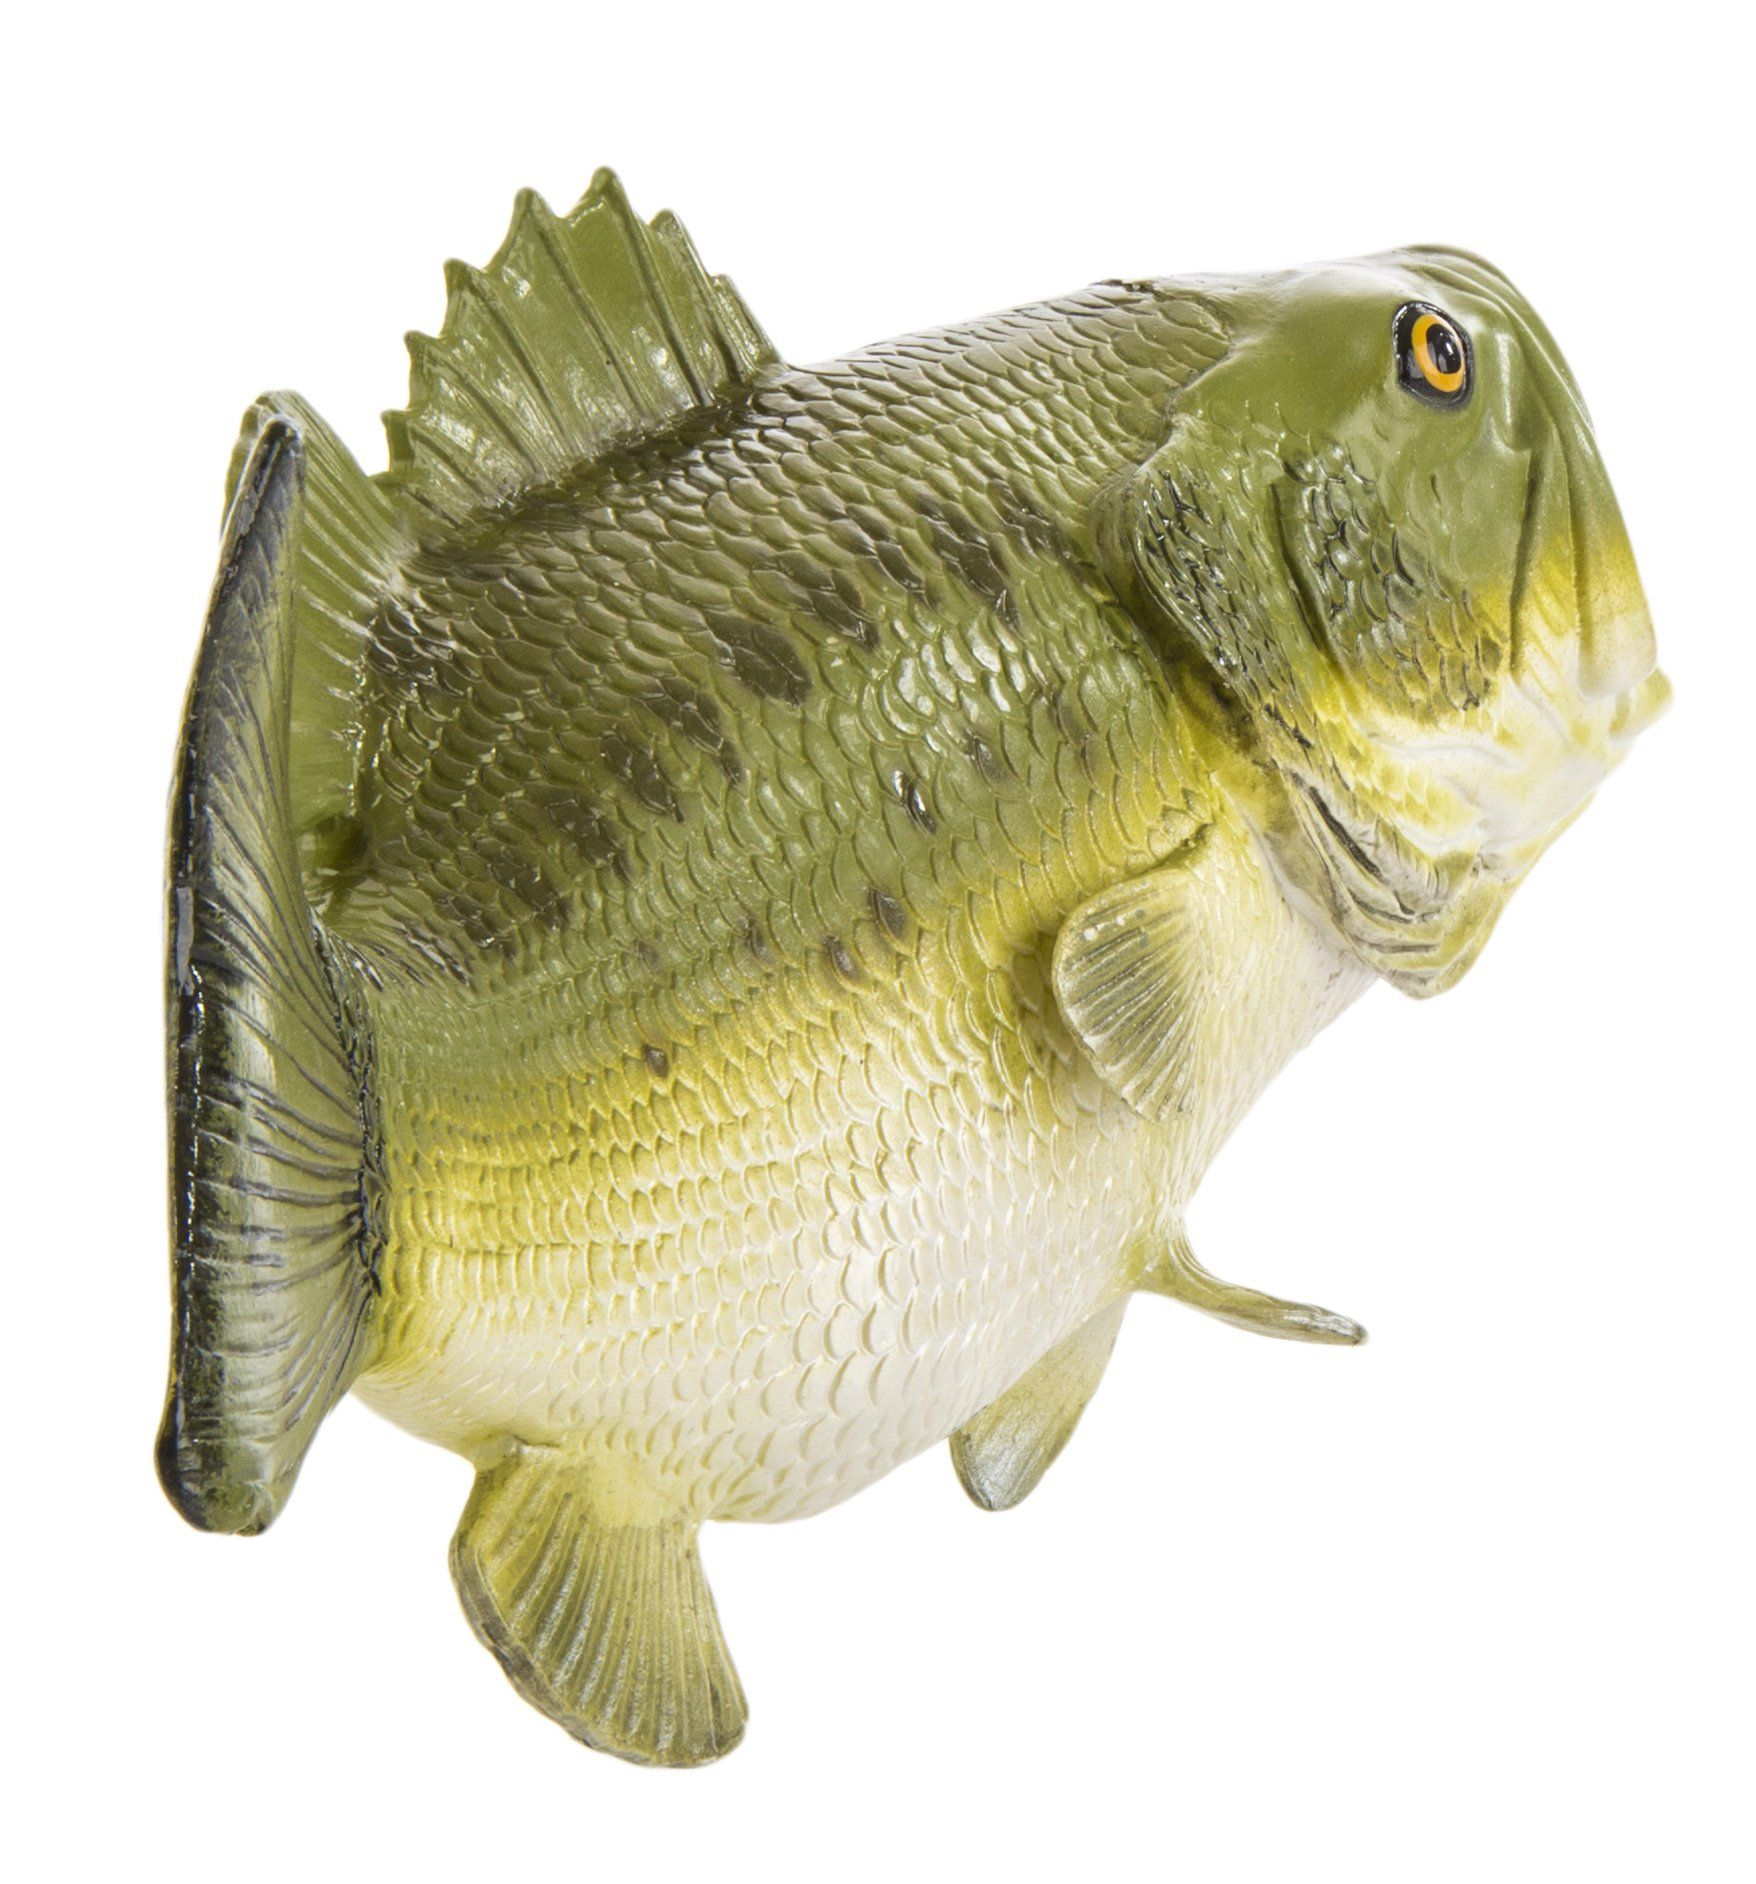 Large Mouth Bass Safari Ltd Incredible Creatures Action & Toy ...